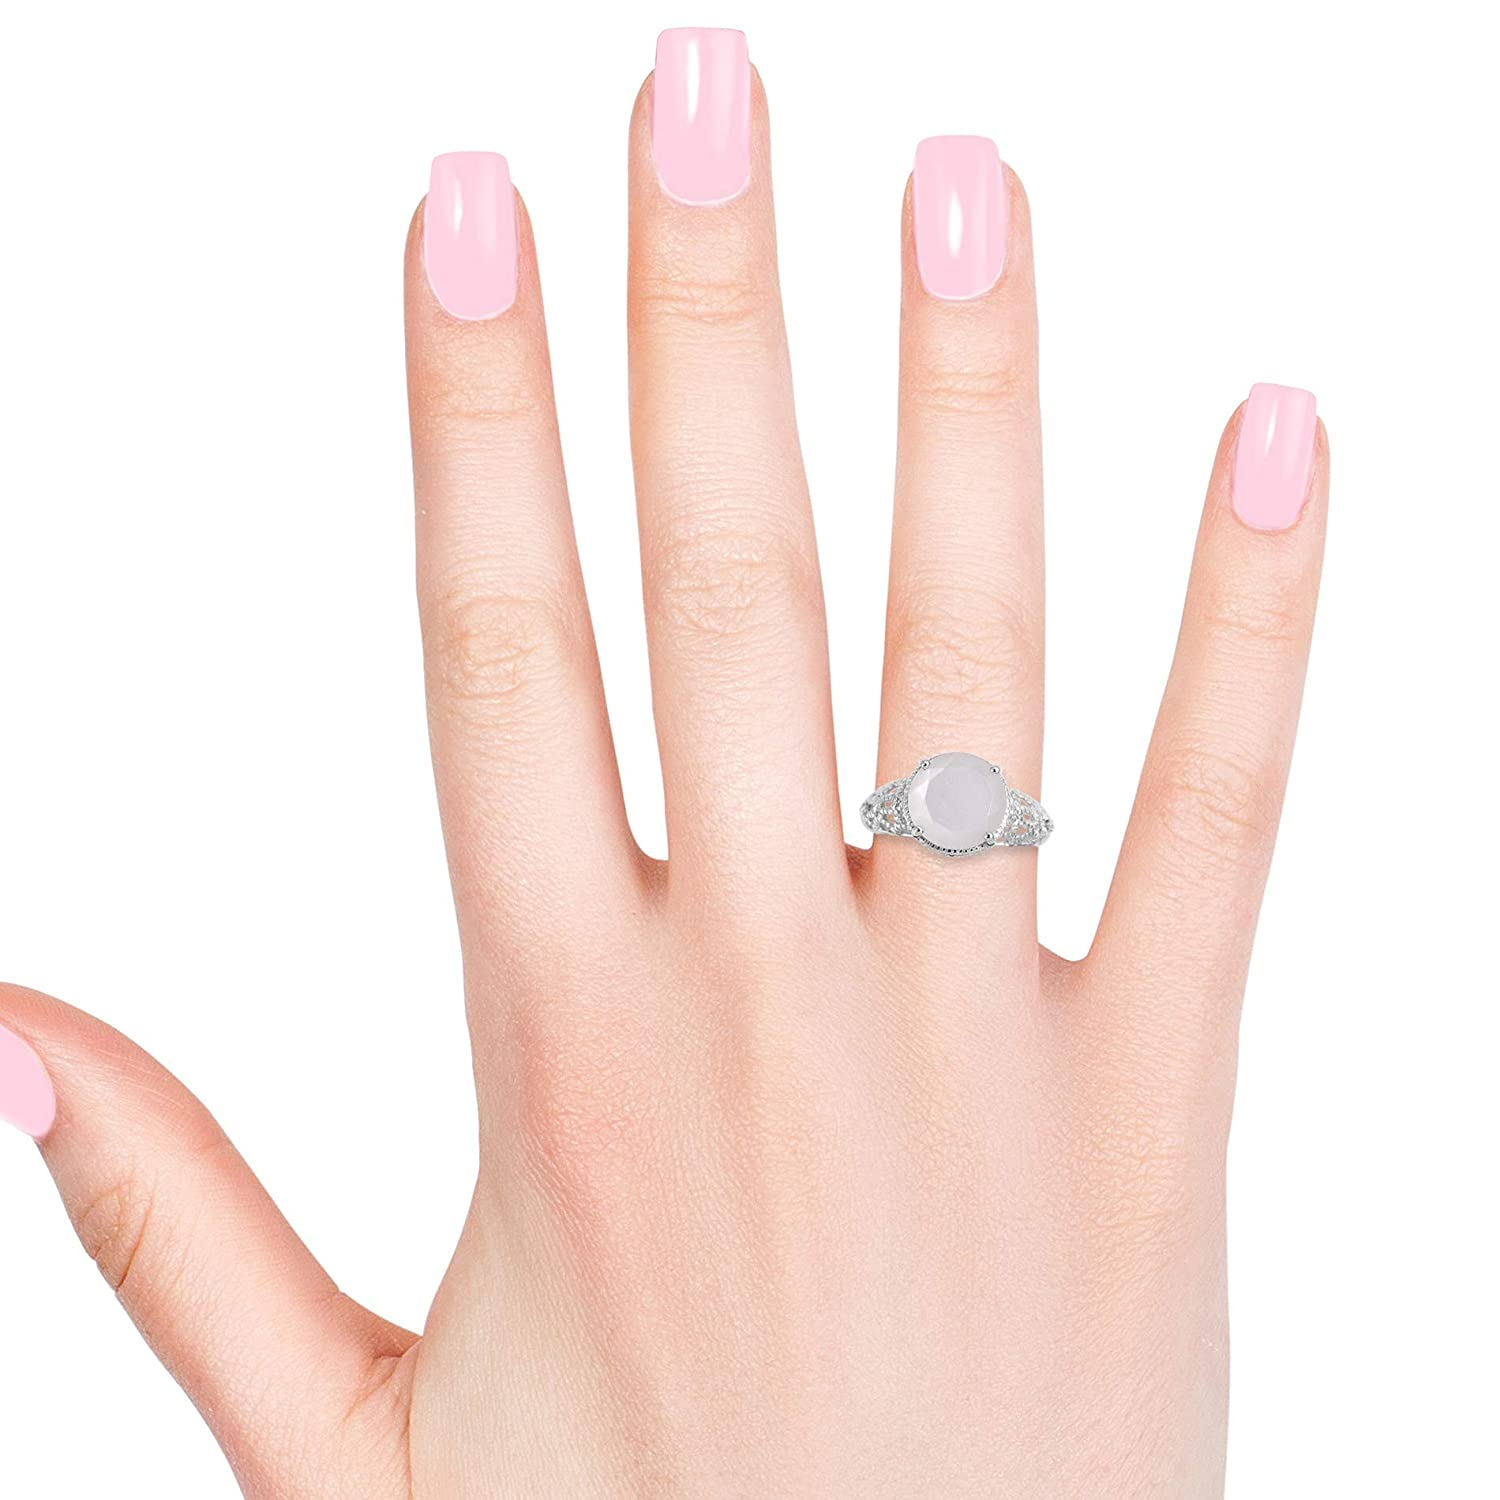 Shop LC Delivering Joy Solitaire Ring Round White Moonstone Gift Jewelry Size 10 Cttw 4.2